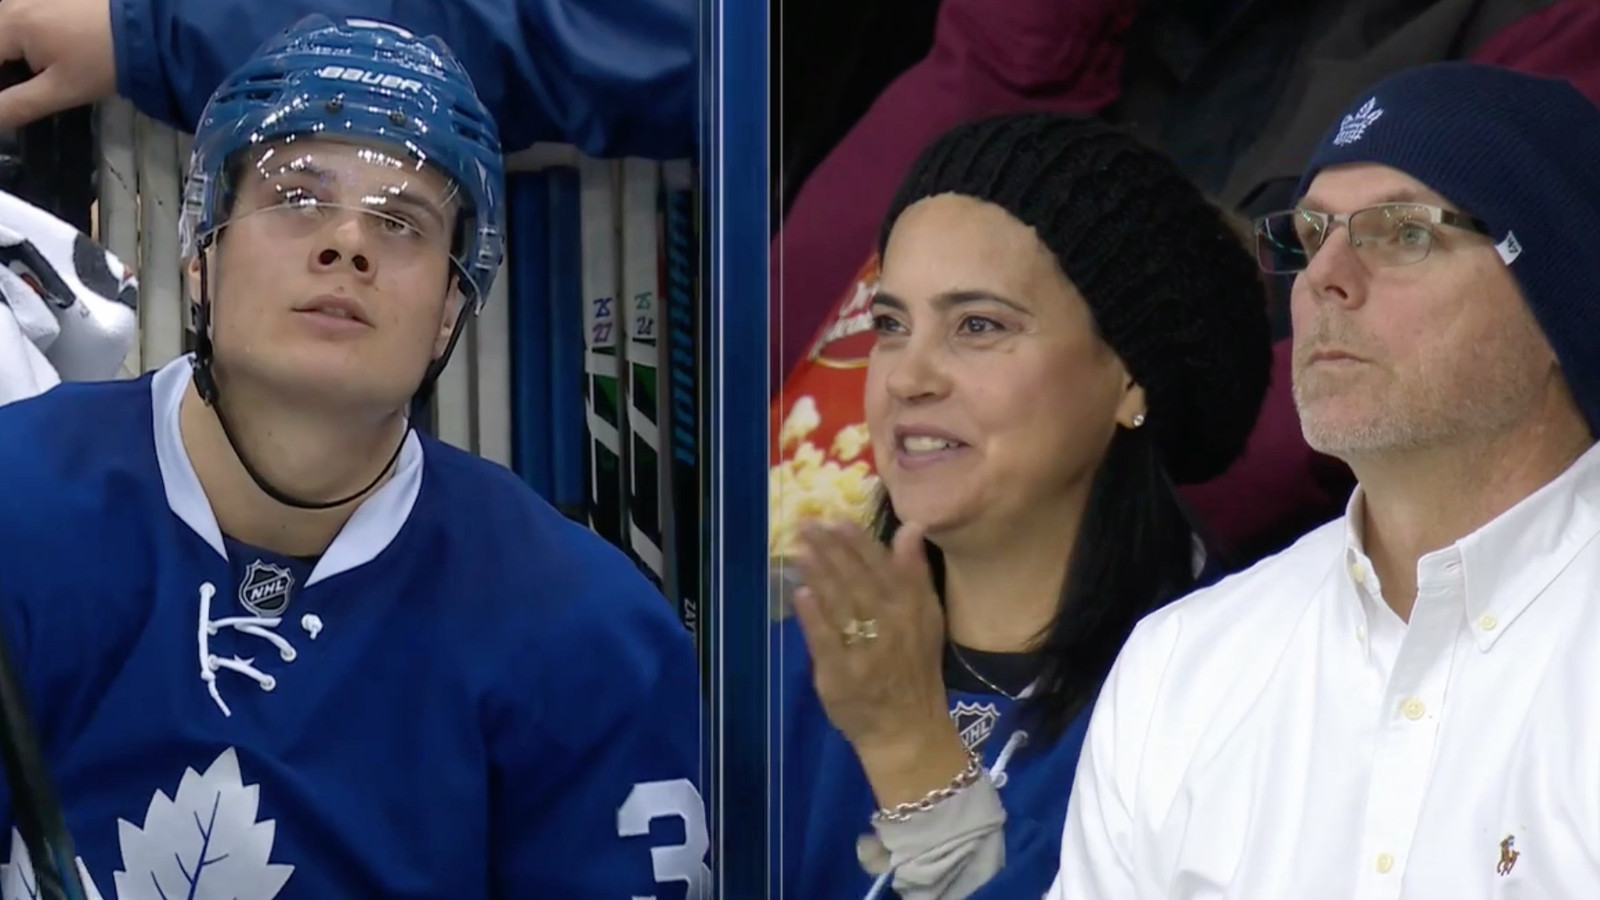 Auston Matthews scored against his hometown team, much to ...